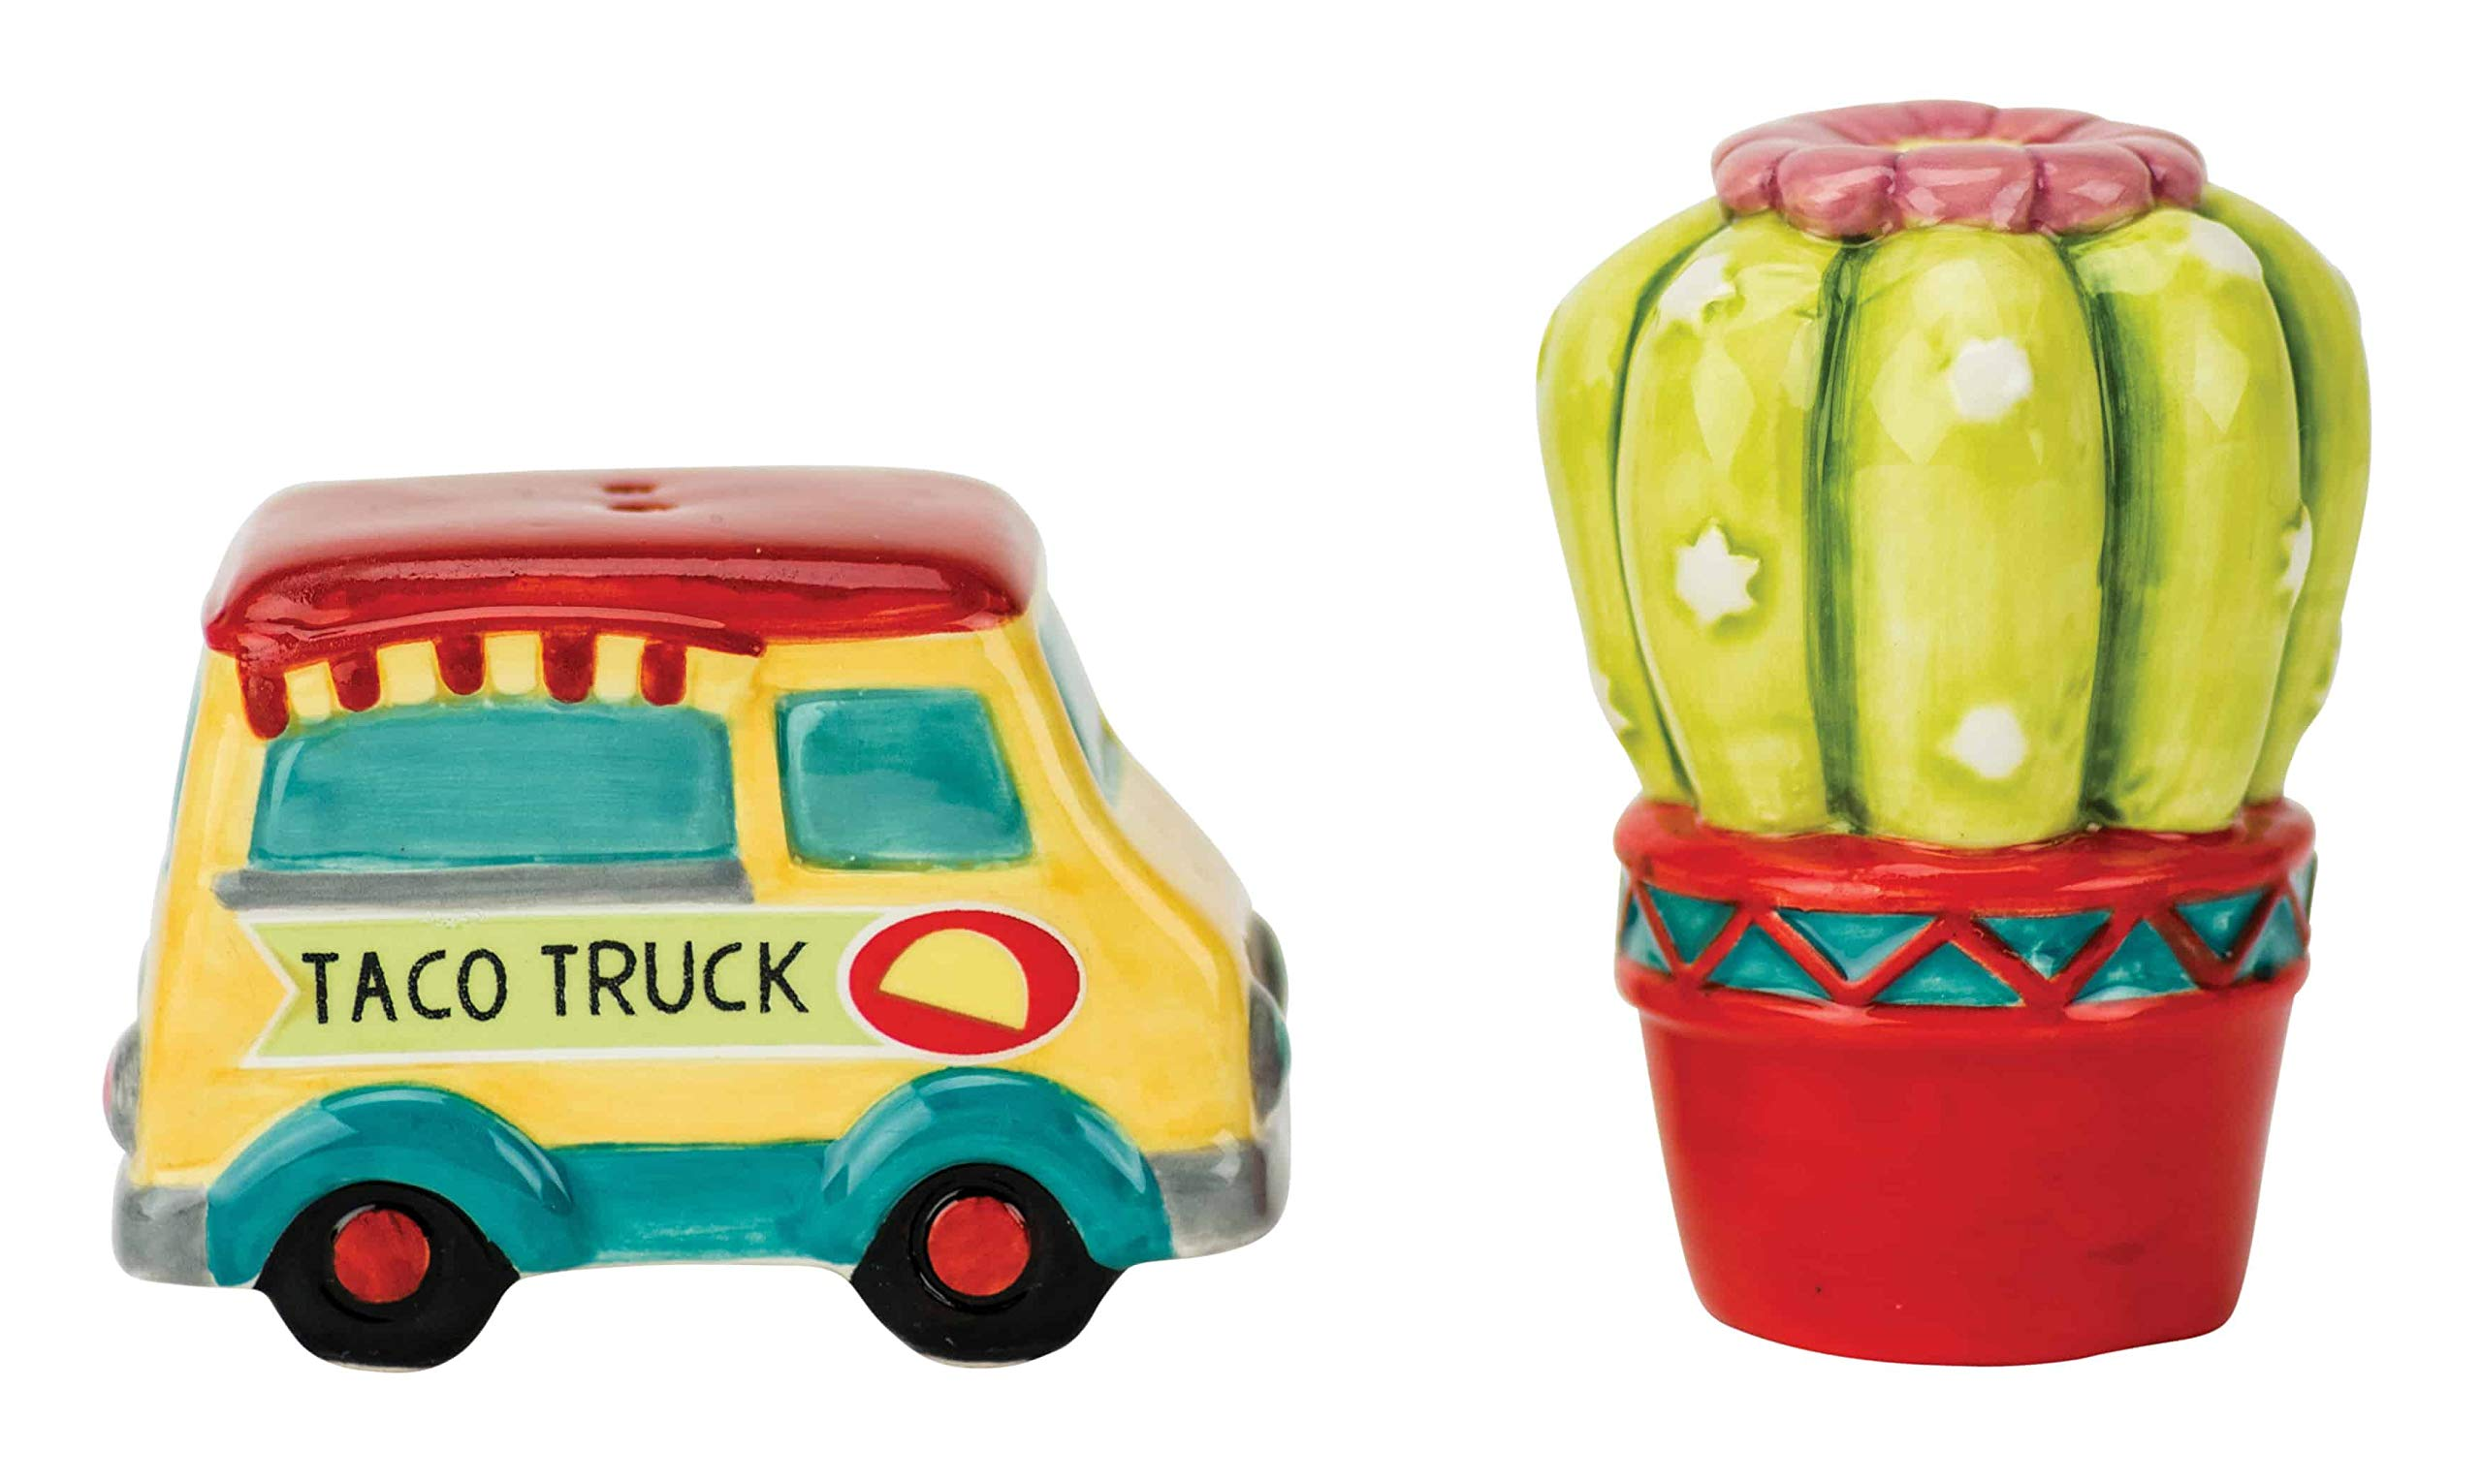 Boston Warehouse 34395 Taco Truck and Cactus Salt and Pepper Shaker Set